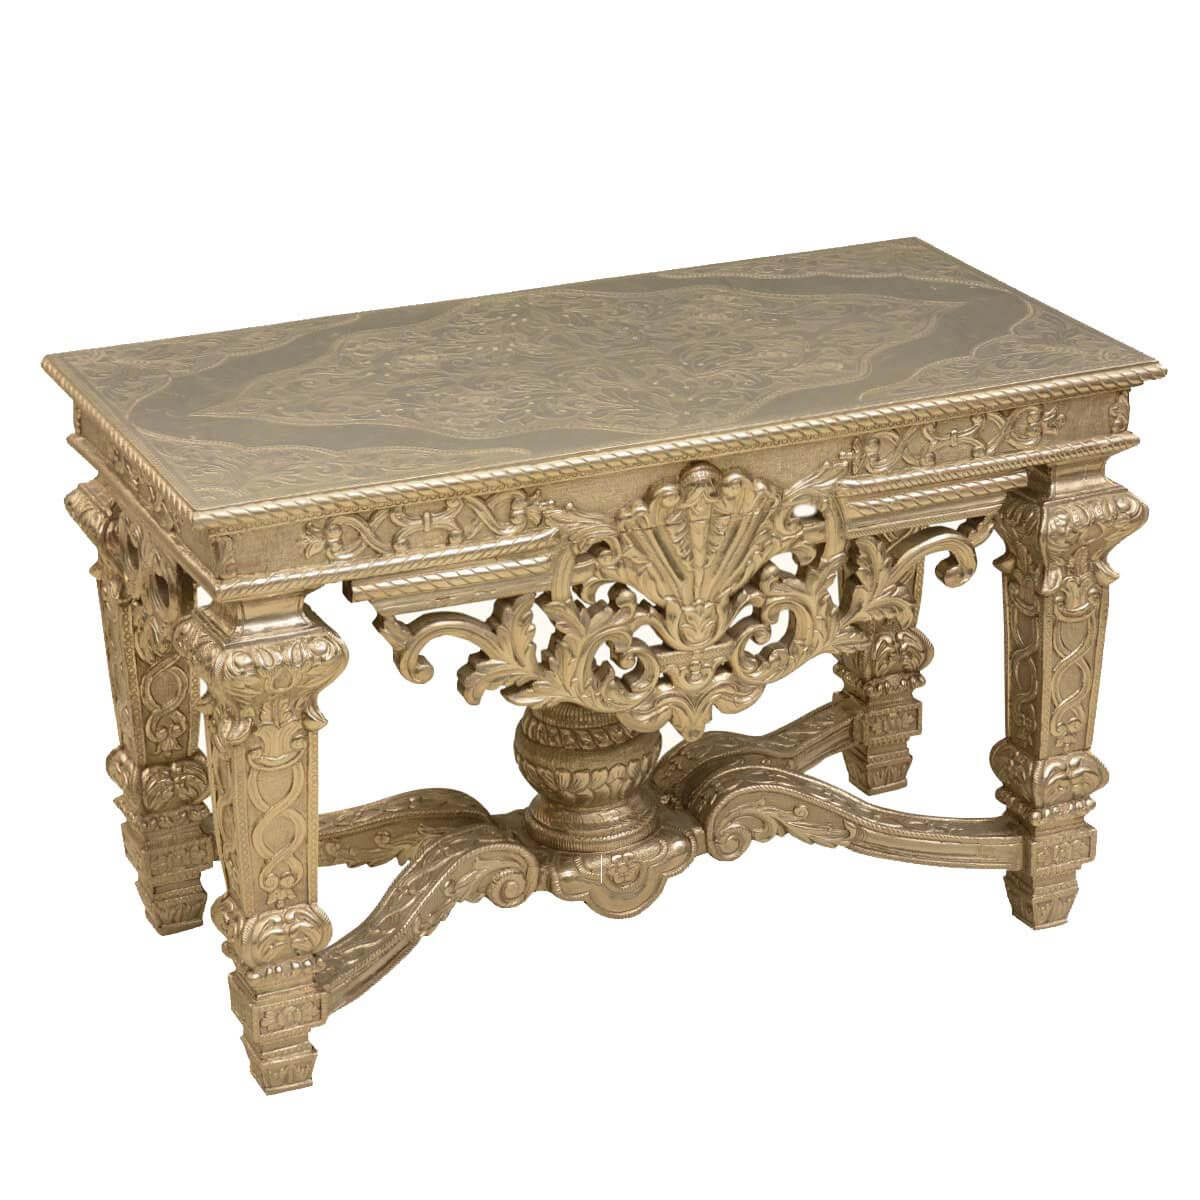 Incroyable French Baroque Teak Wood U0026 Silver Metal Ornate 48 Console Table